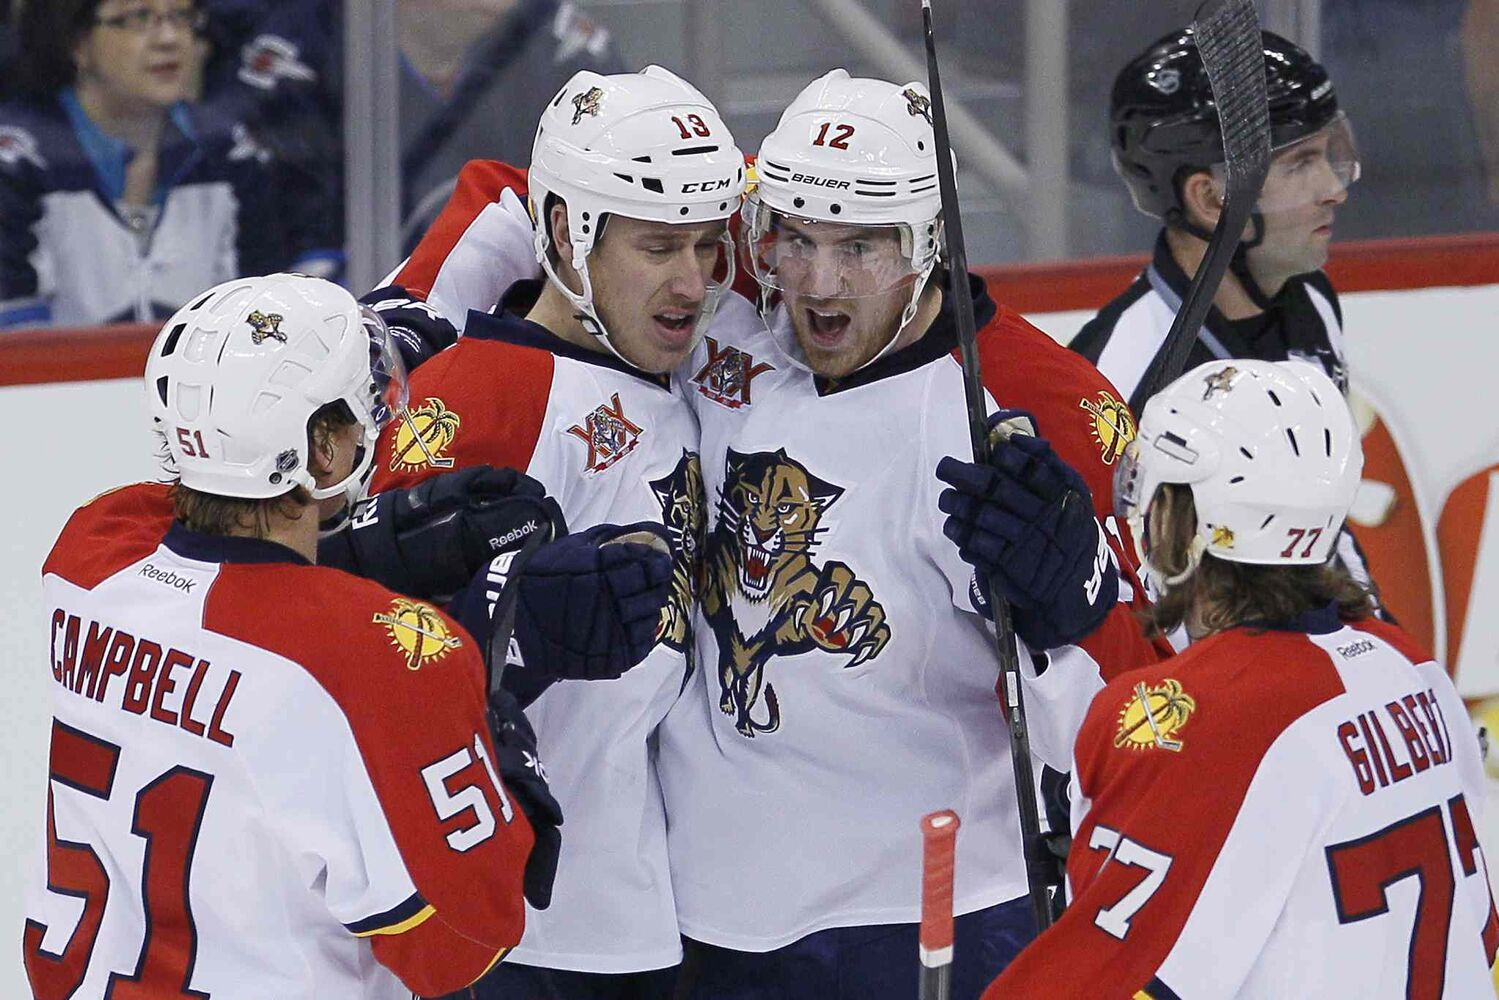 Florida Panthers' Brian Campbell (51), Shawn Matthias (18), Jimmy Hayes (12) and Tom Gilbert (77) celebrate goal Matthias' goal against the Winnipeg Jets during the first period. (John Woods / The Canadian Press)